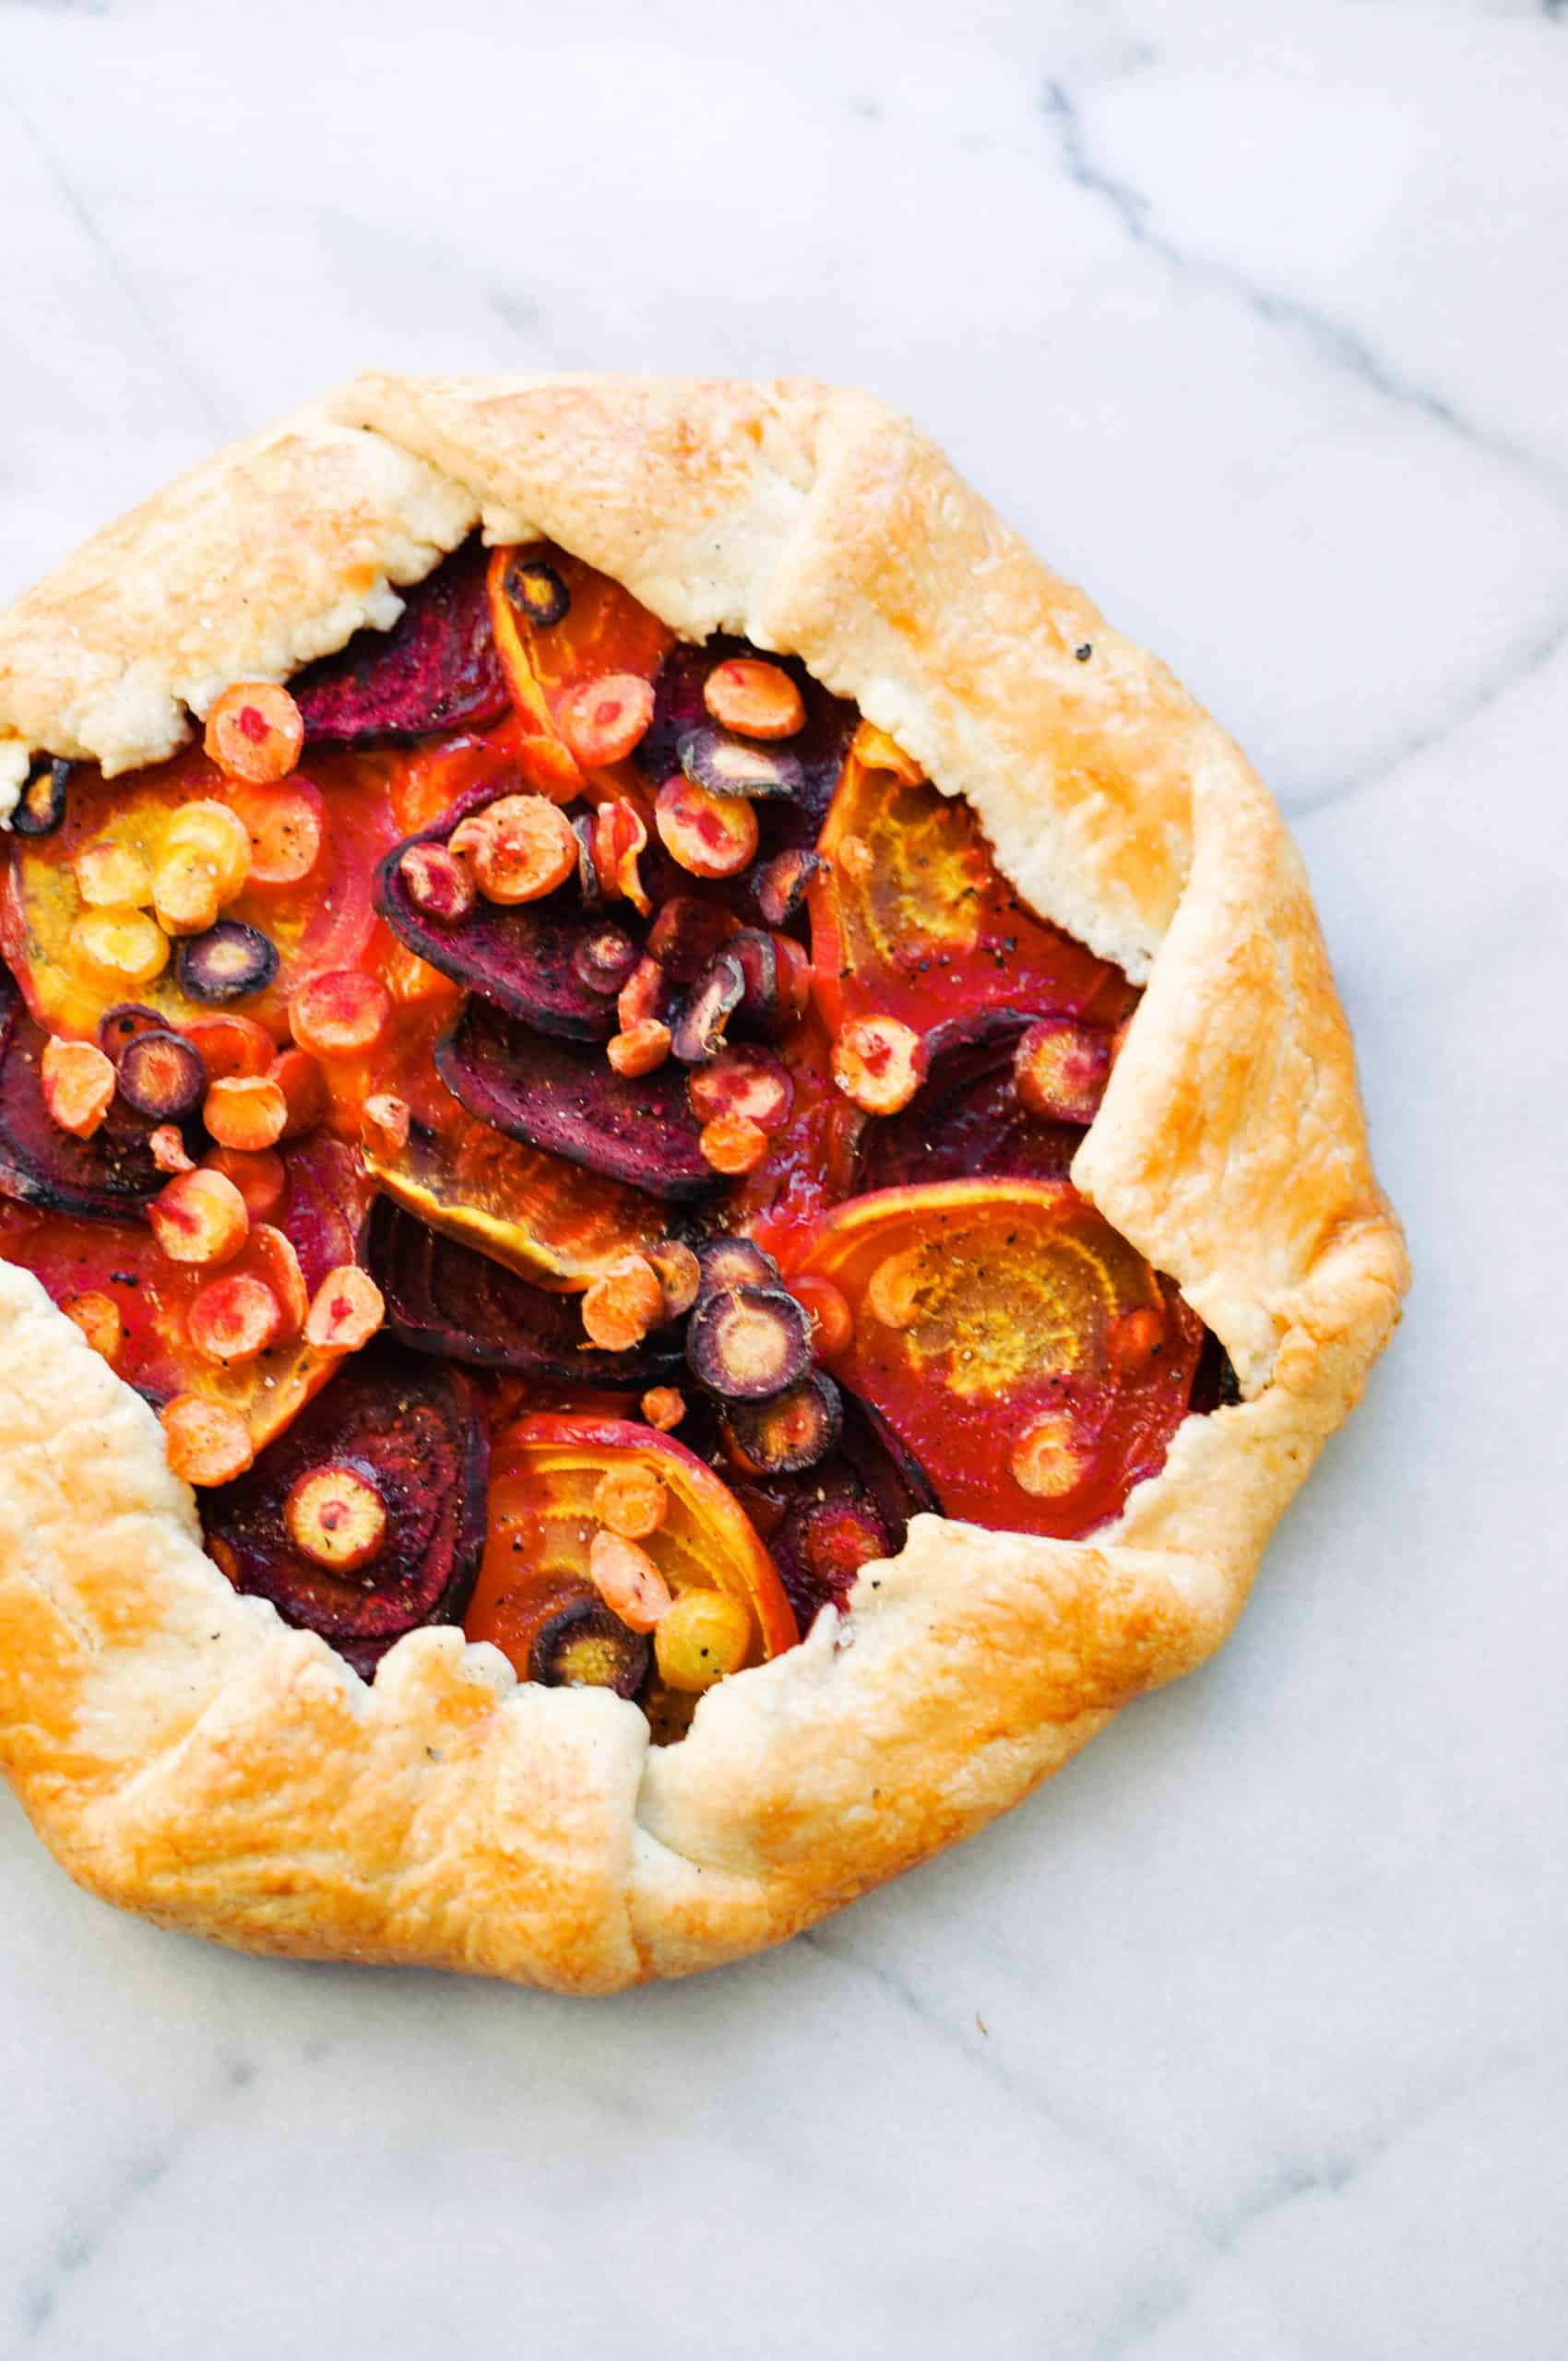 beet and carrot galette